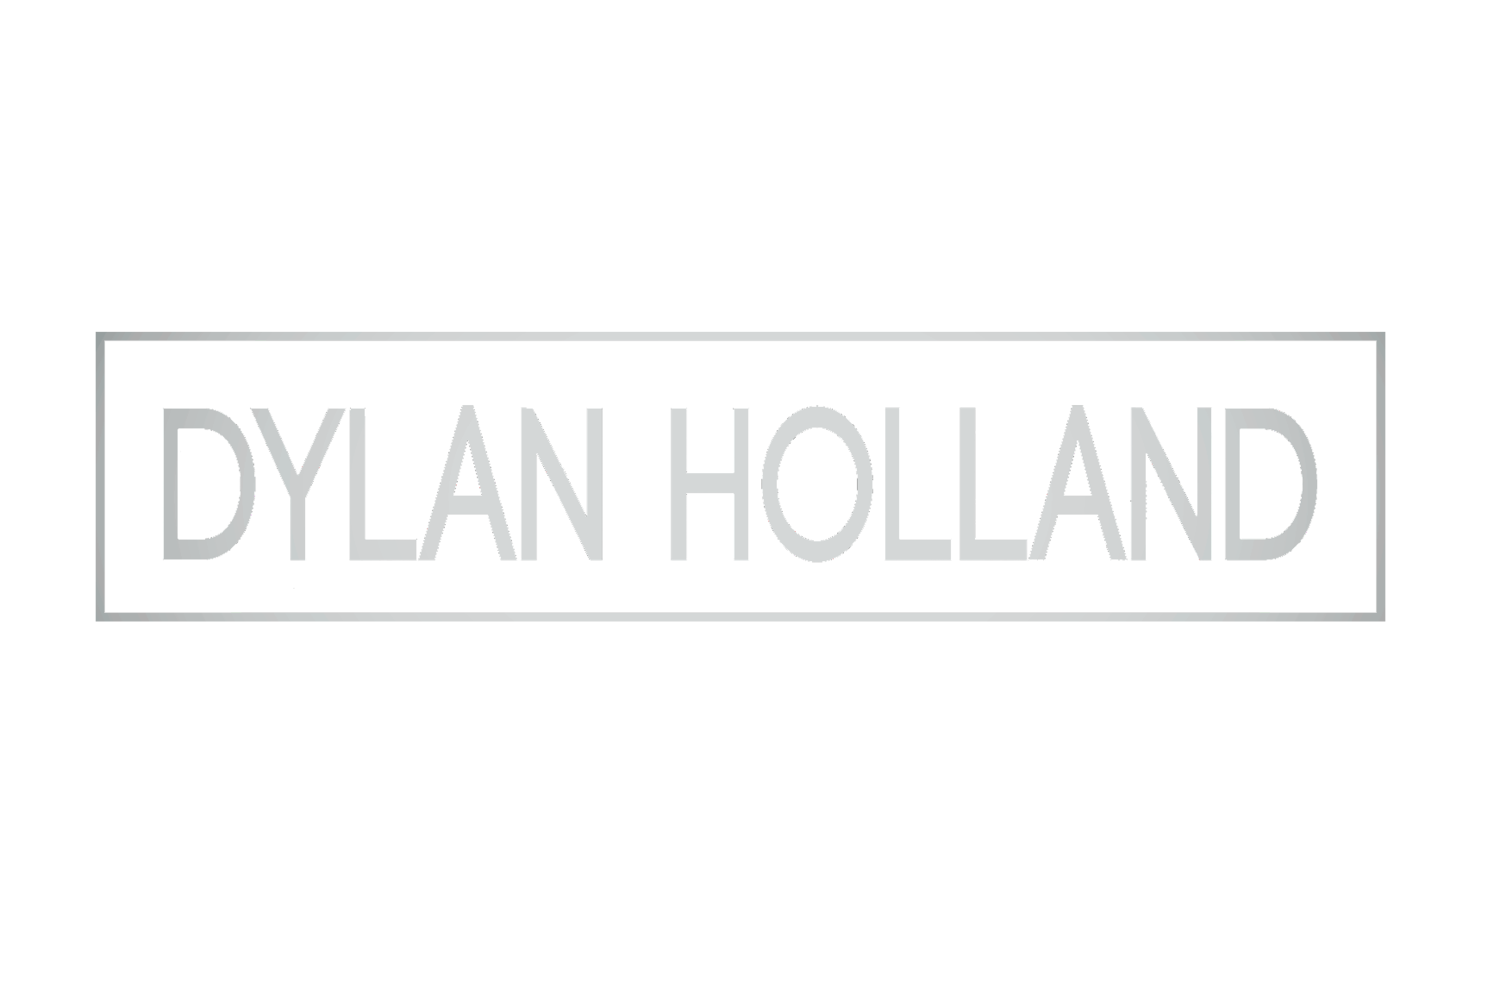 Dylan Holland